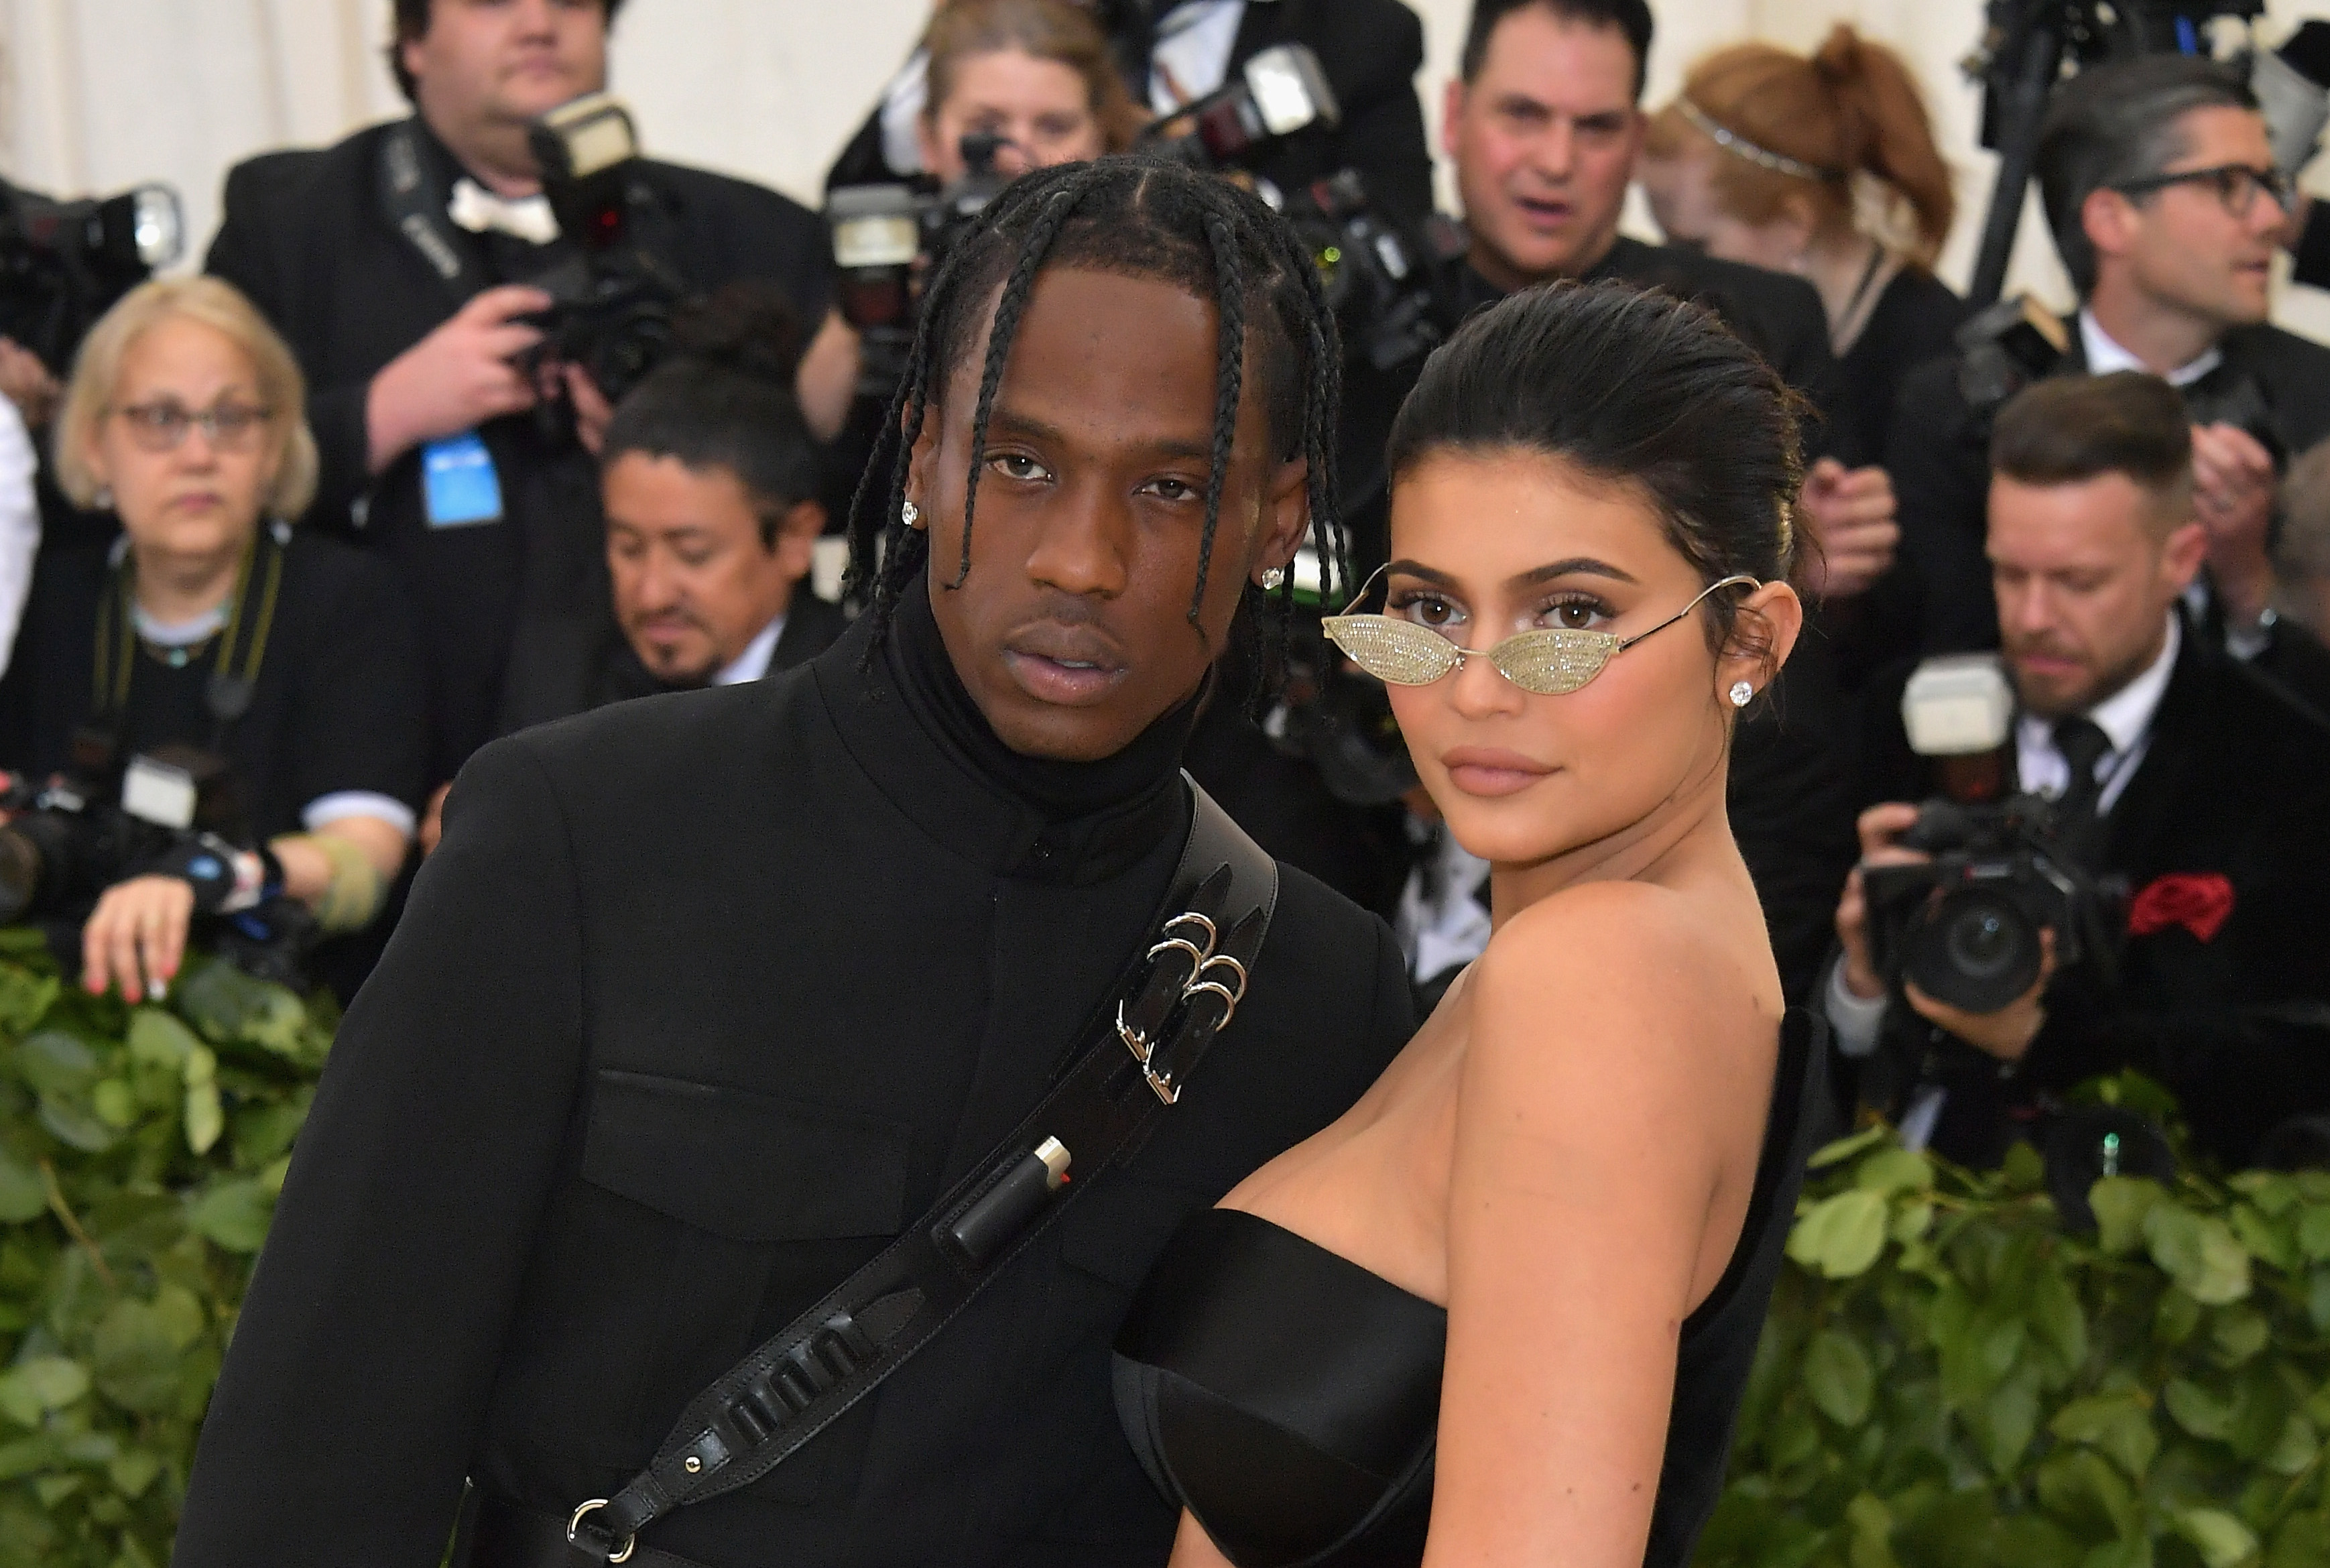 Kylie Jenner and Travis Scott showed us some hella cute PDA on the 2018 Met Gala red carpet